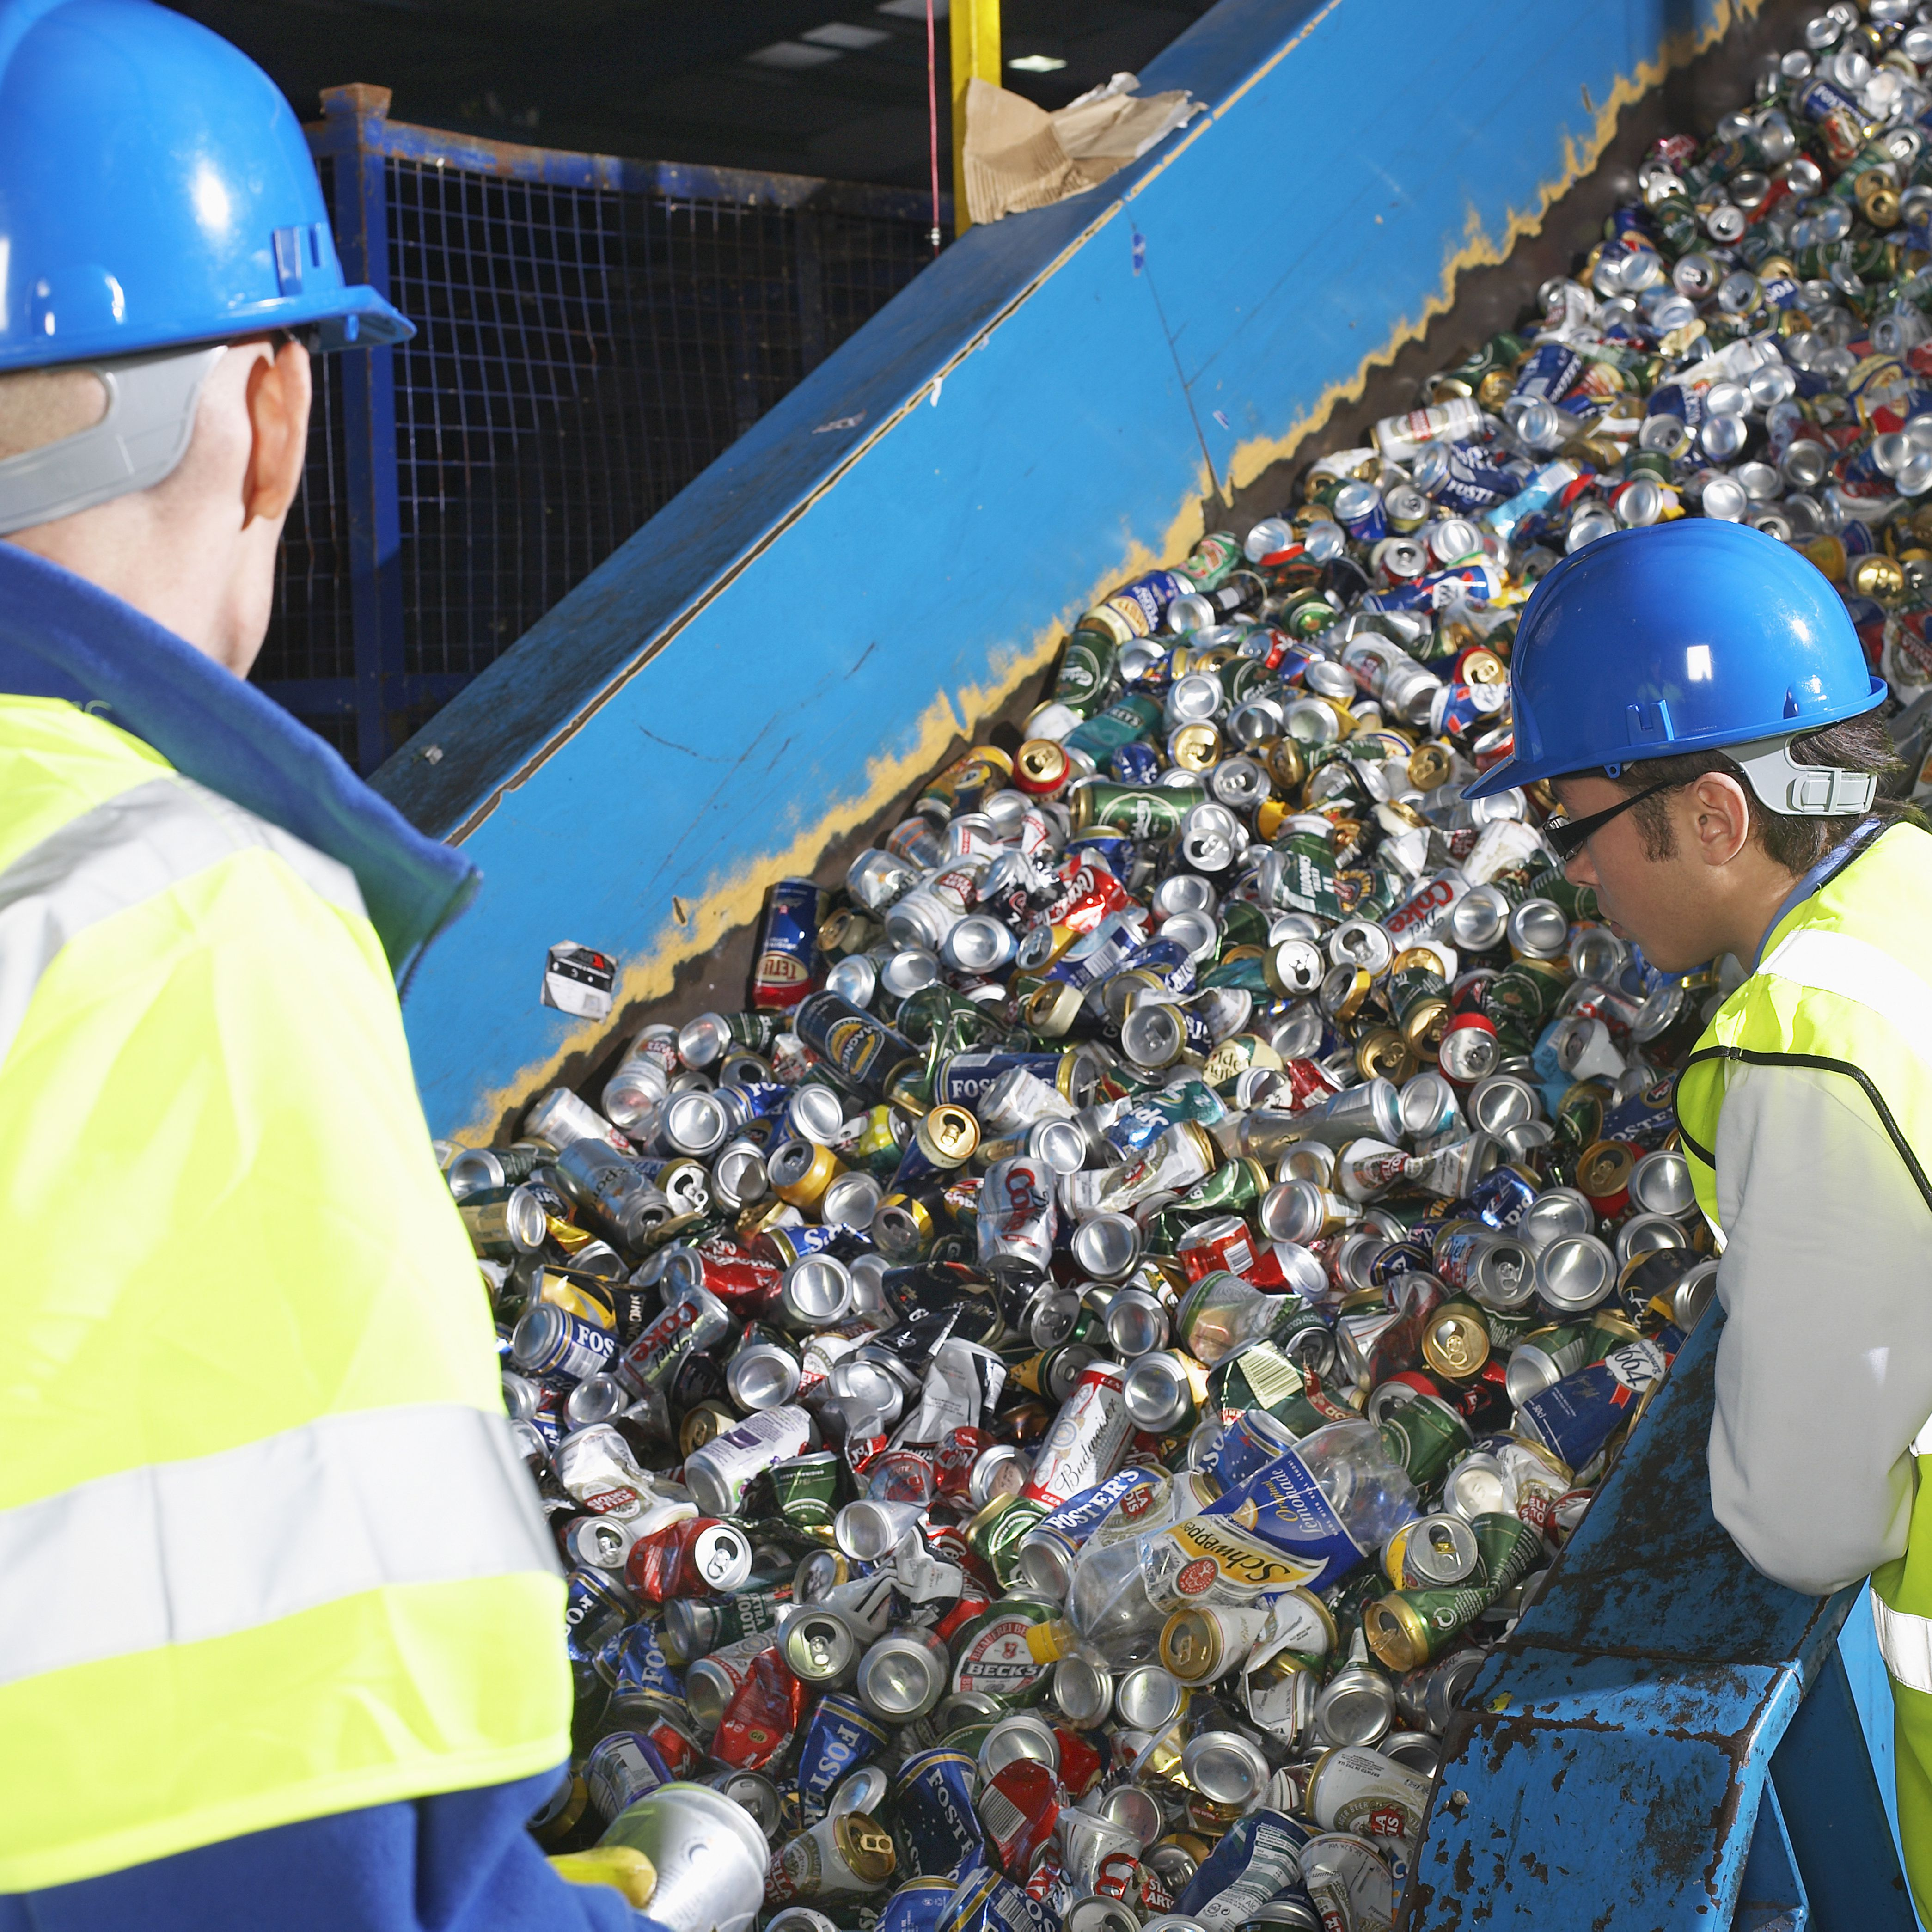 Latest Details On Commercial Waste